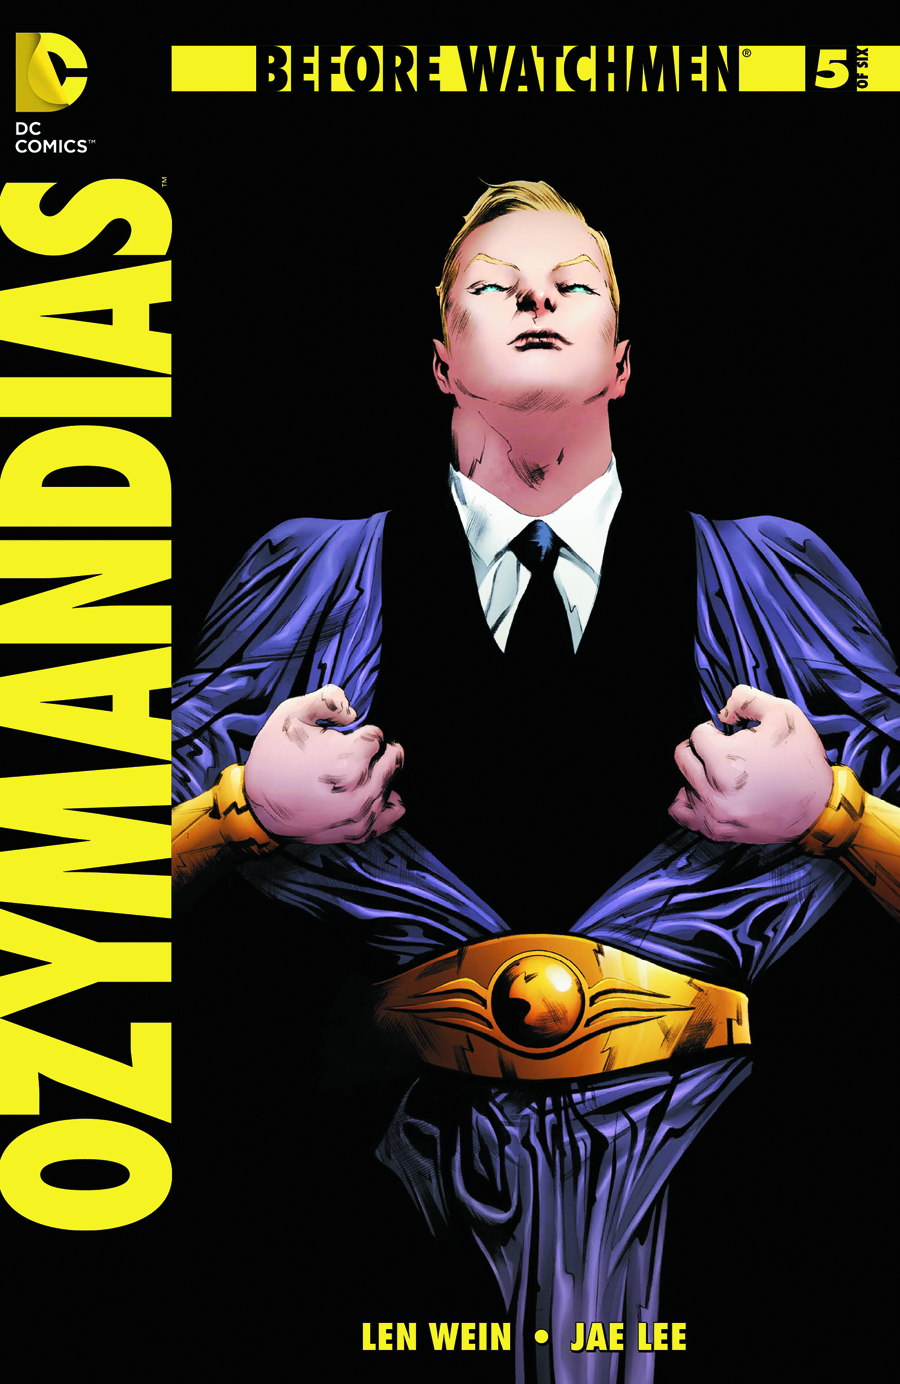 BEFORE WATCHMEN OZYMANDIAS #5 (OF 6)